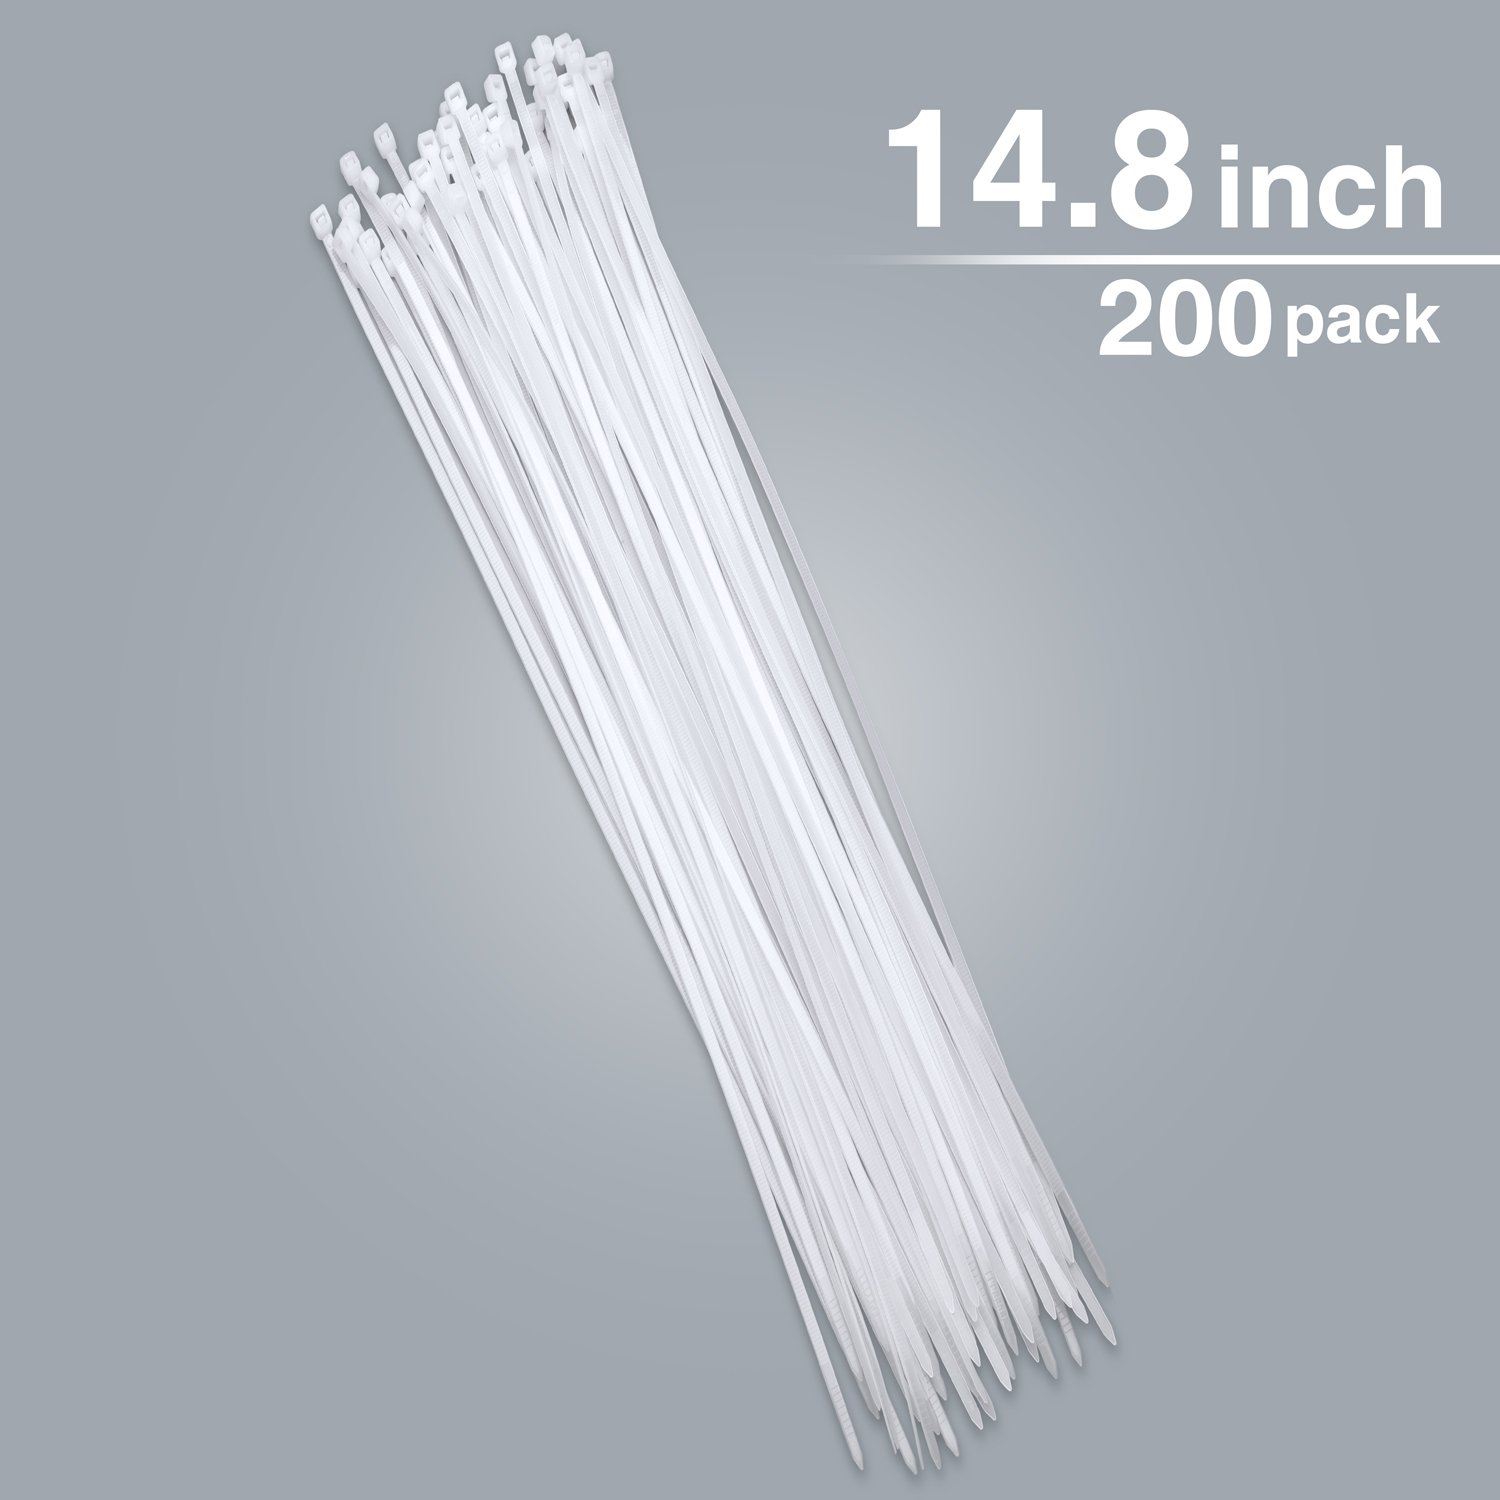 14.8Inch 200 Pack Zip Ties Syntrific Heavy Duty Cable Ties CablePerfect for Organizing Wires Home &Office Garage Workshop Use(White)